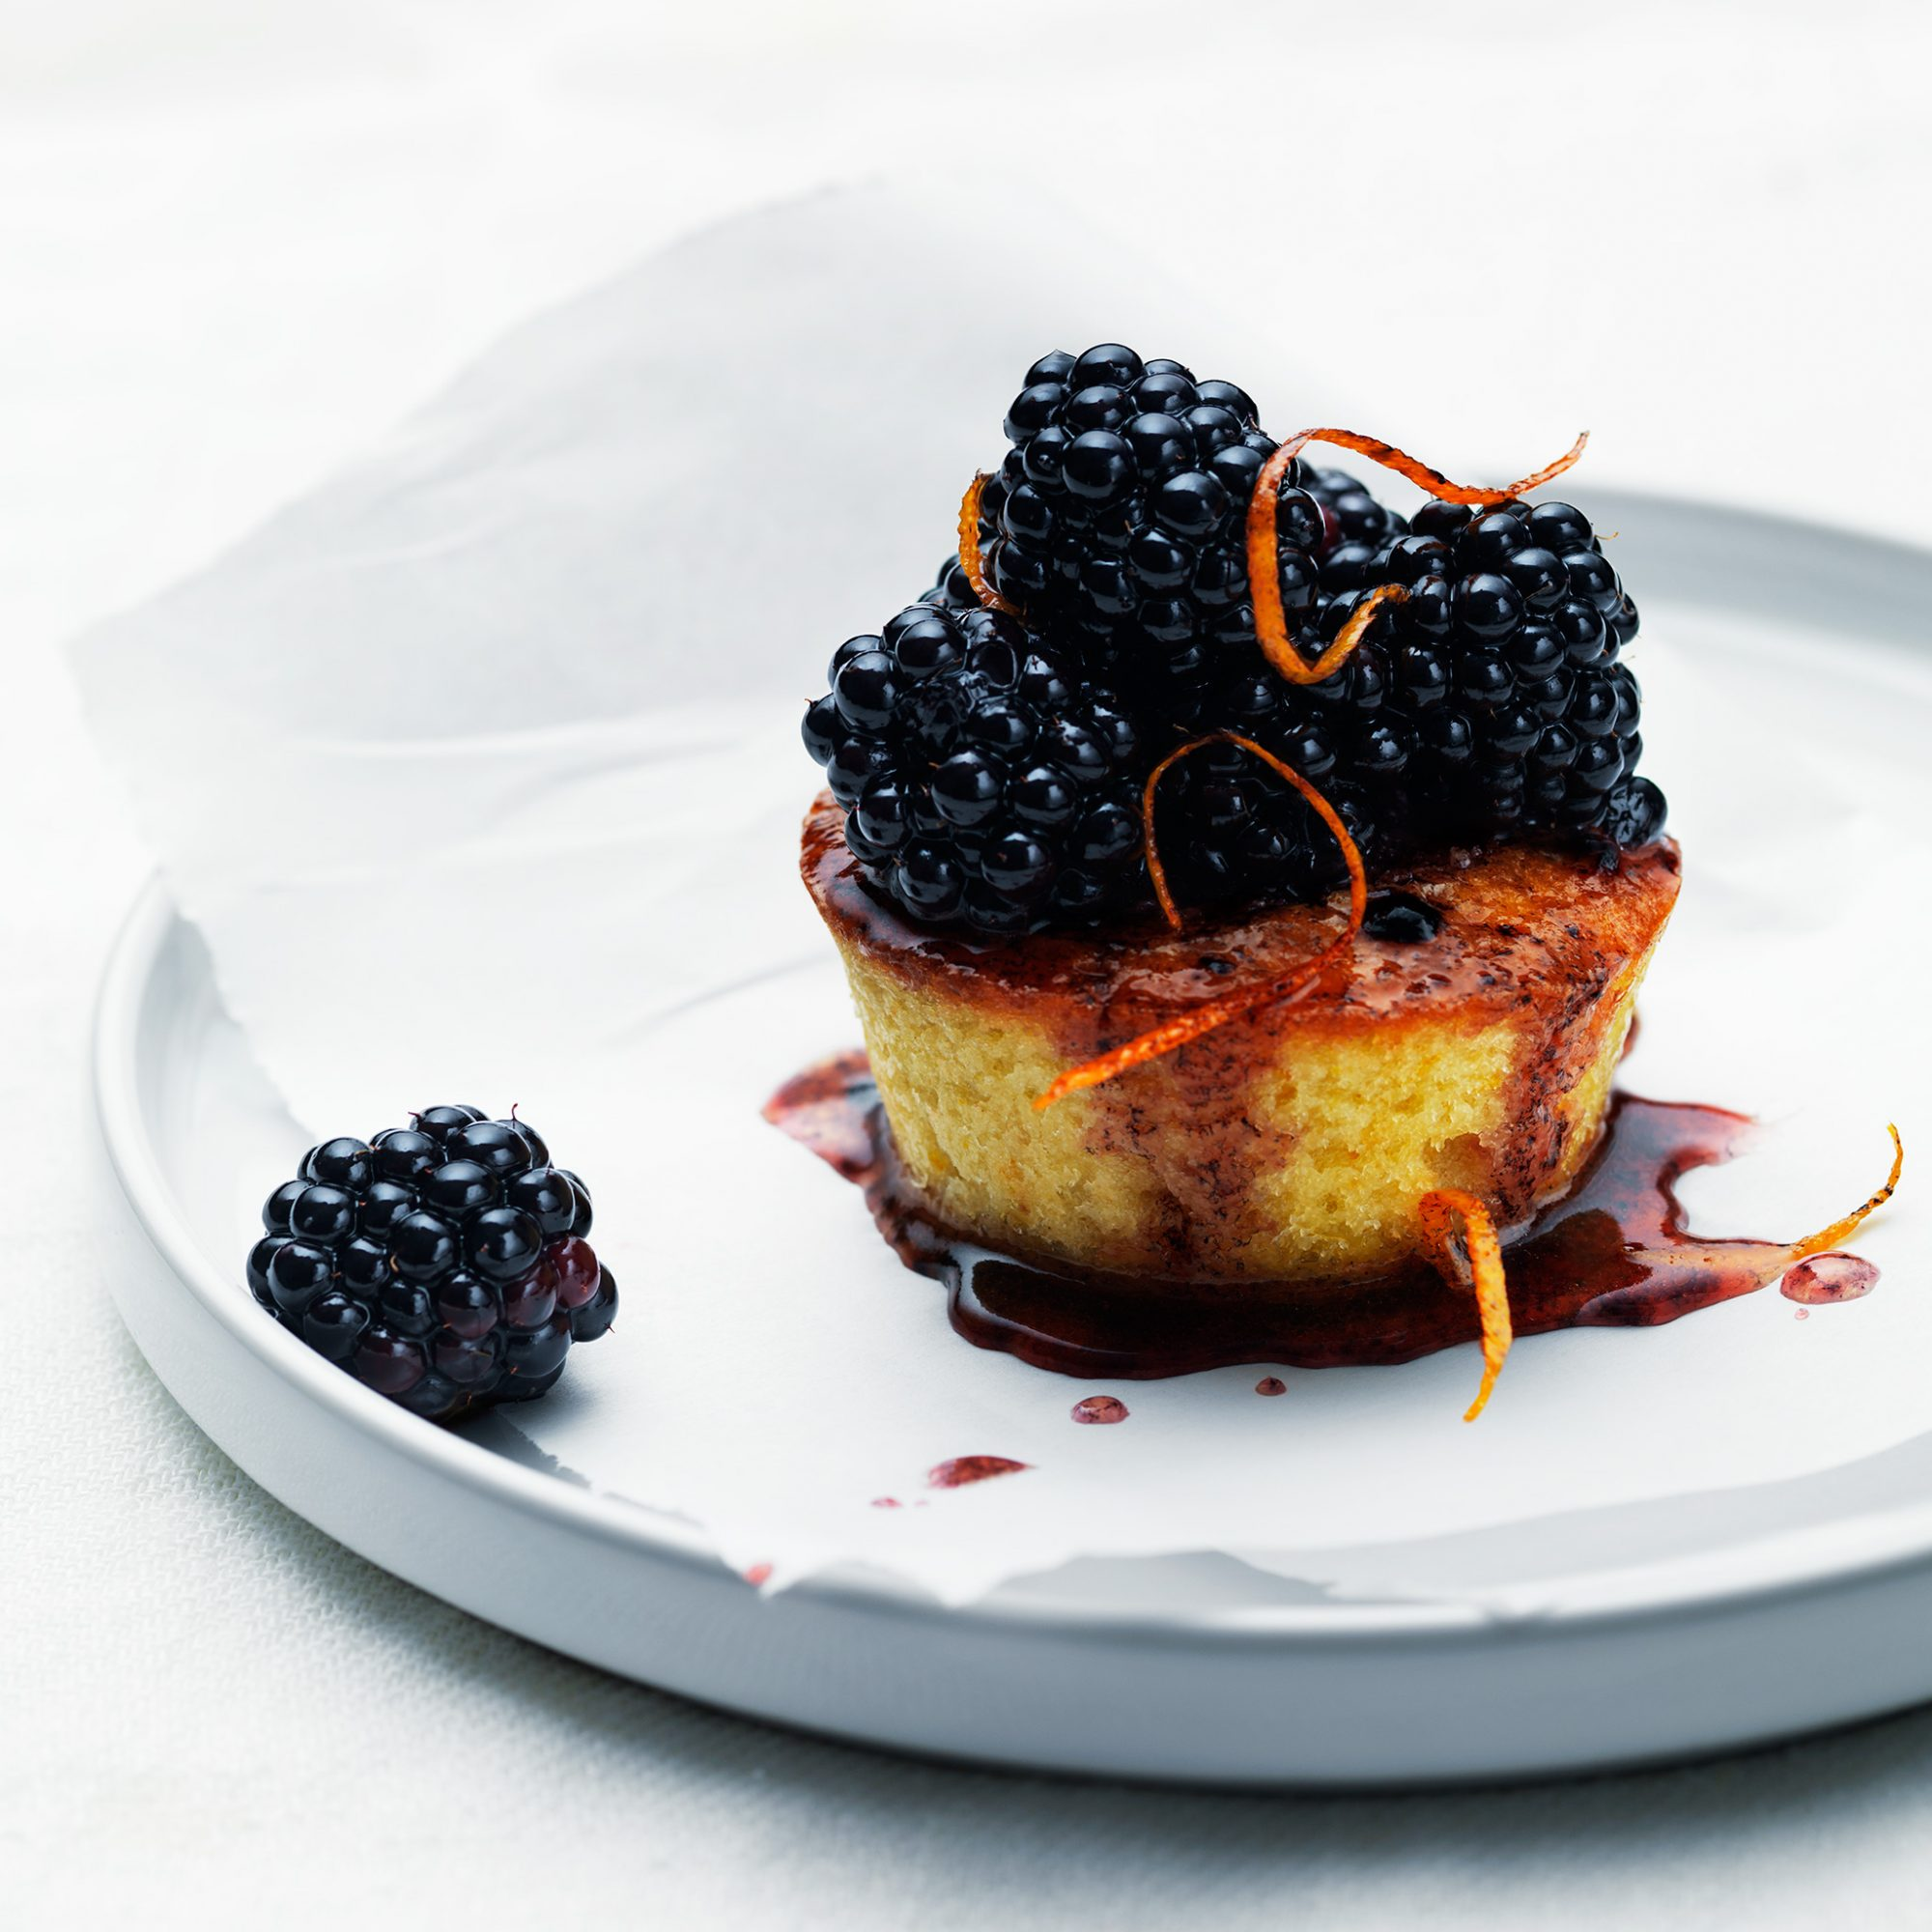 Olive Oil Cake with Blackberries